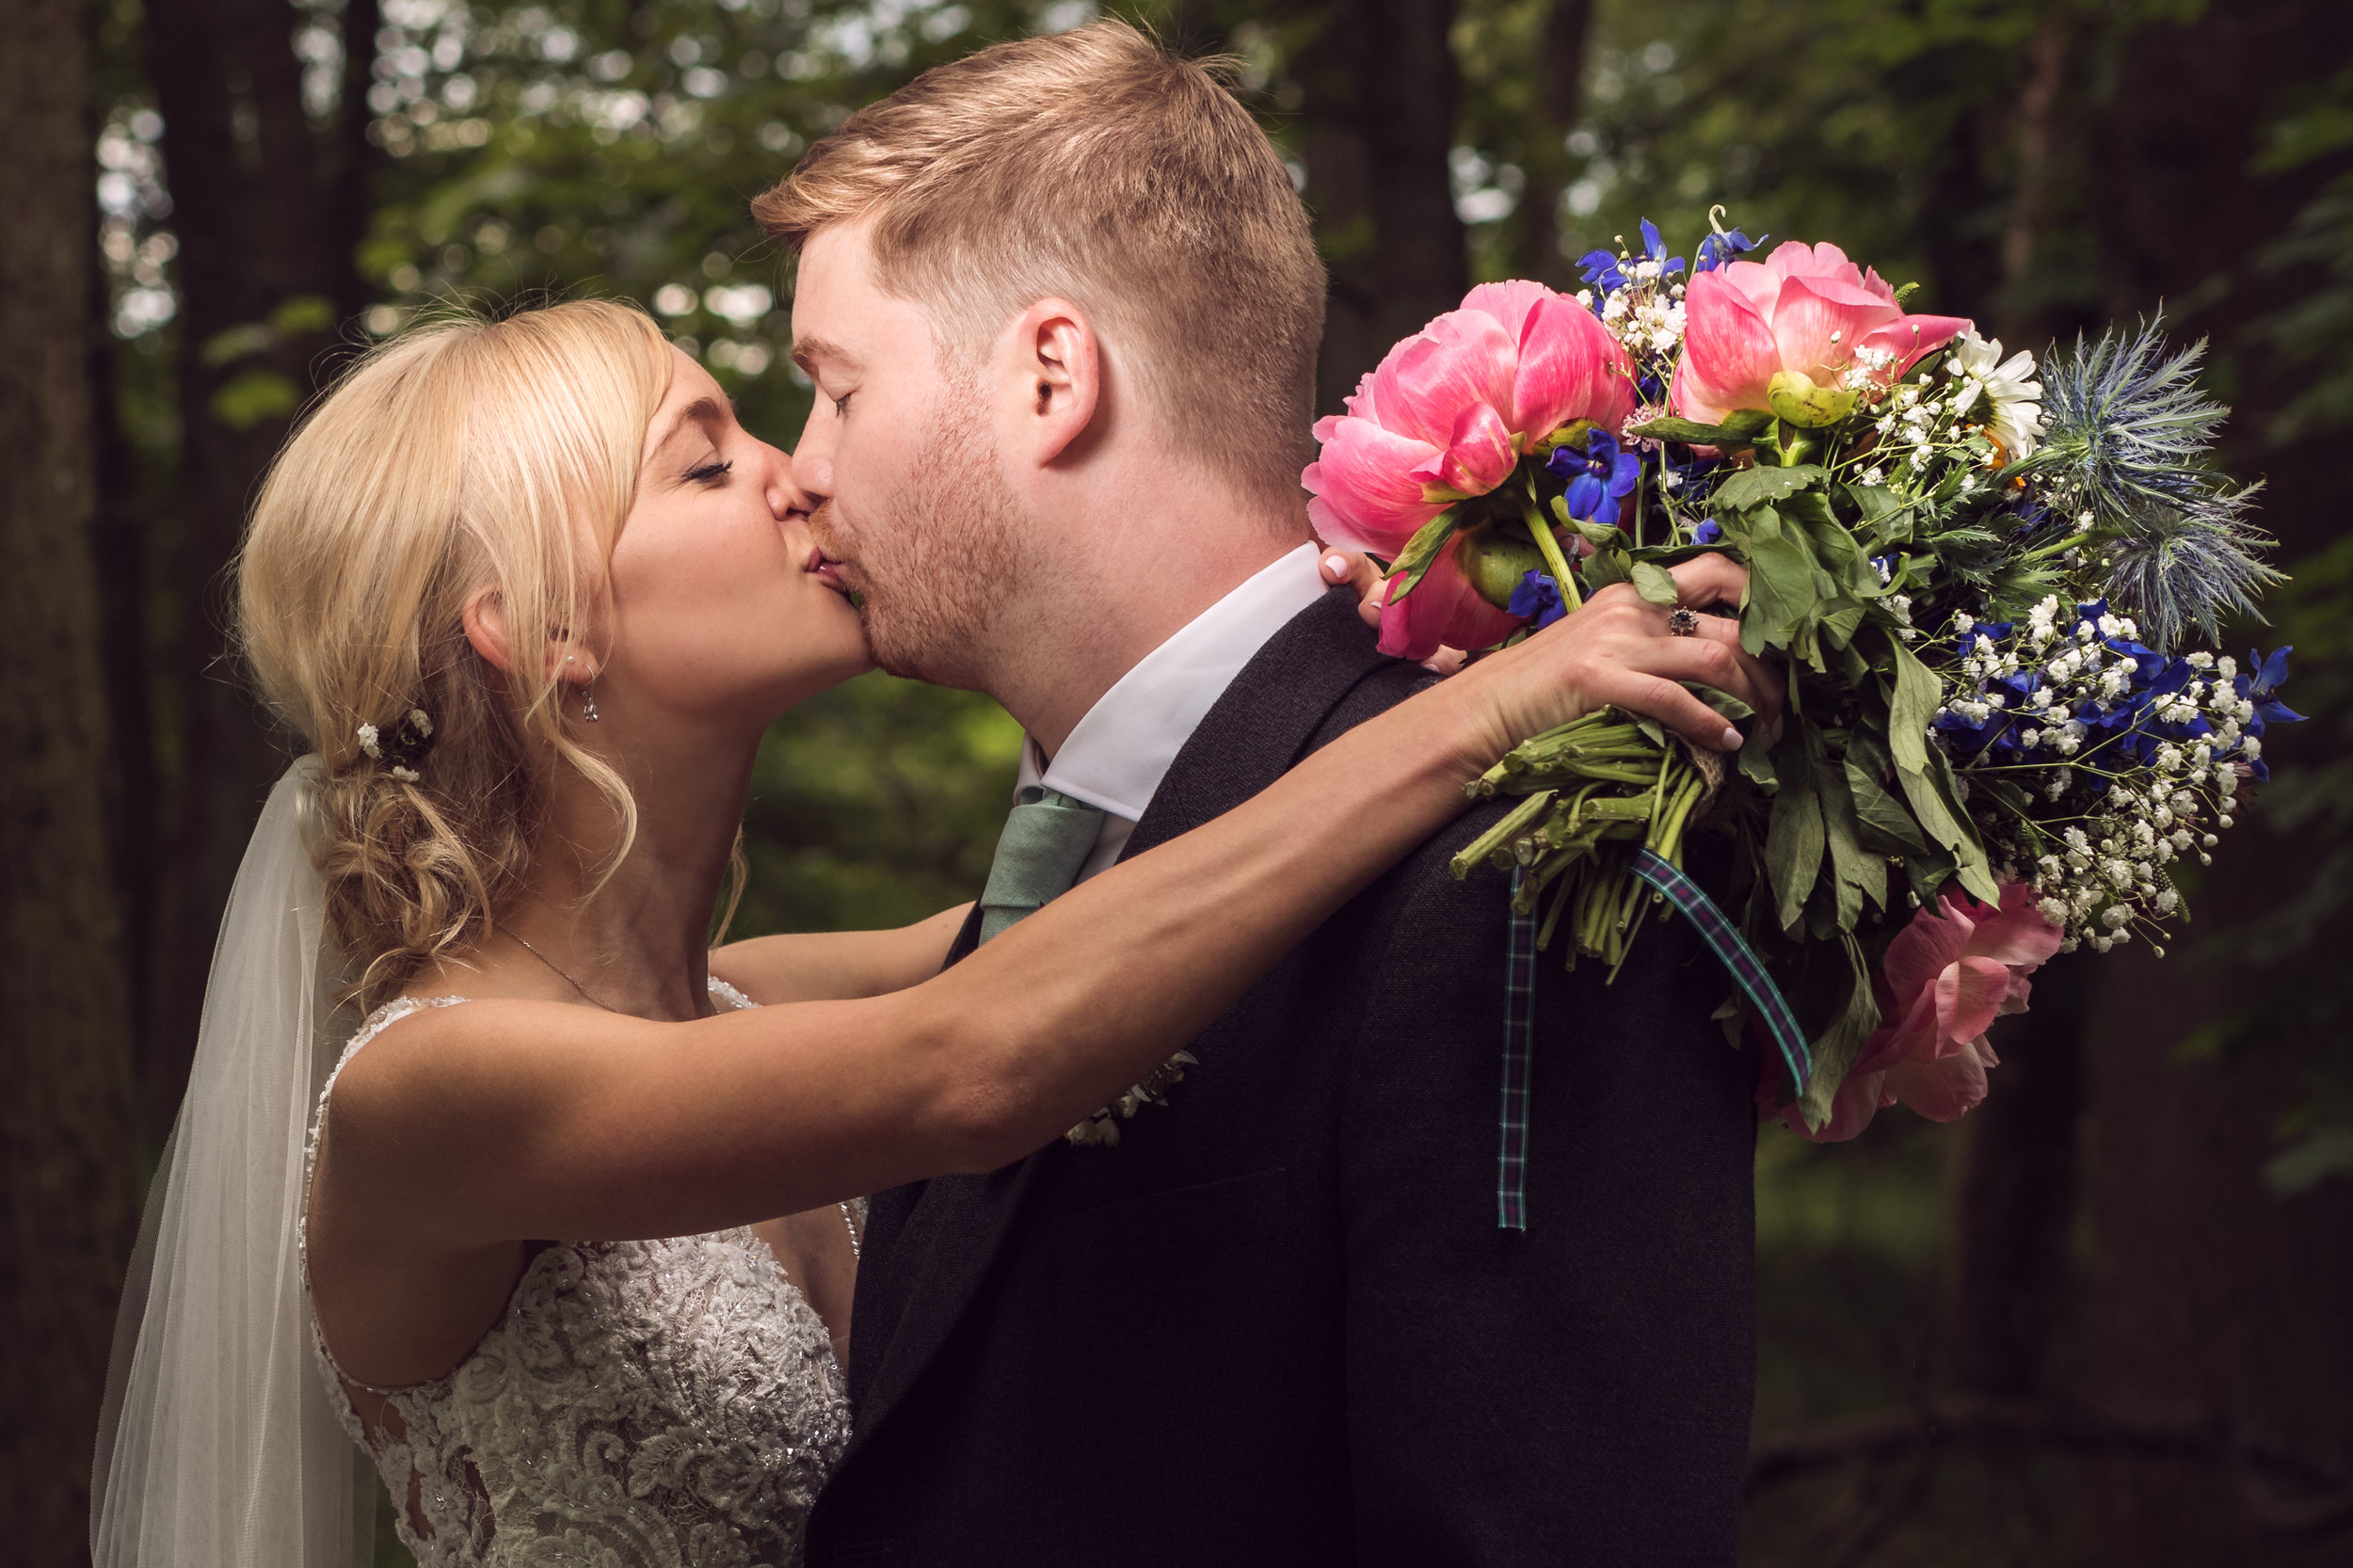 Beautiful bride and handsome groom. Wedding photographer based in Glasgow, Scotland. What a lovely wedding bouquet!